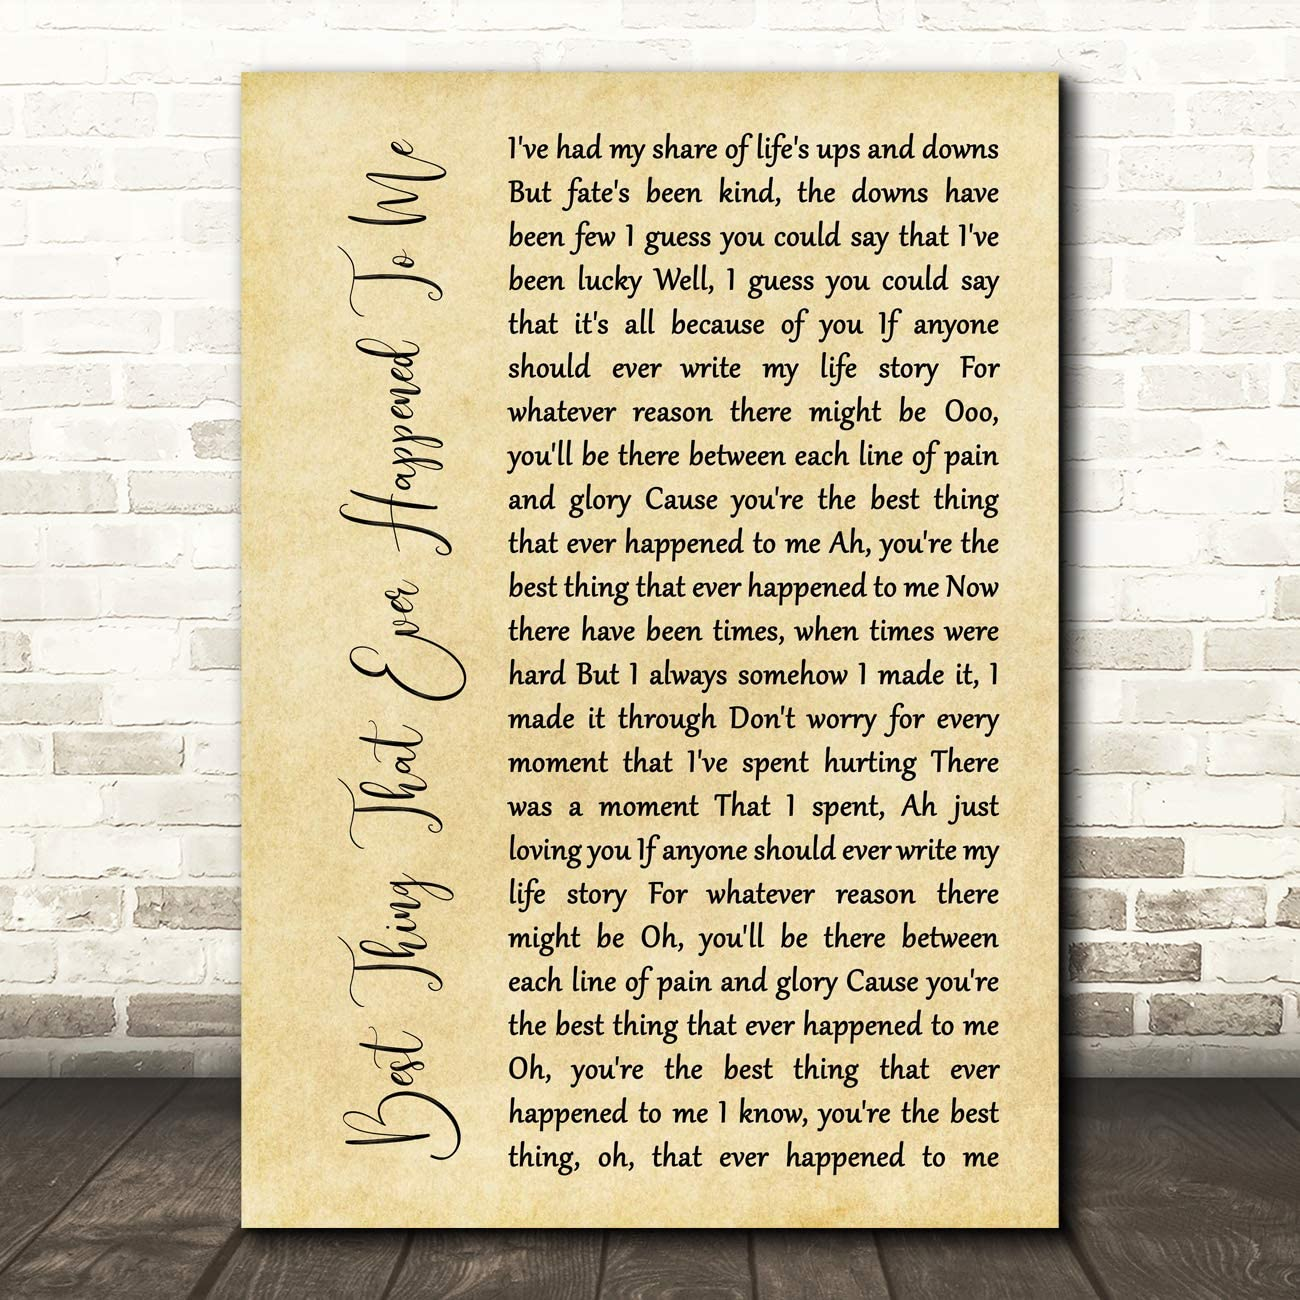 Best Thing That Ever Happened to Me Rustic Script Song Lyric Quote Wall Art Gift Print